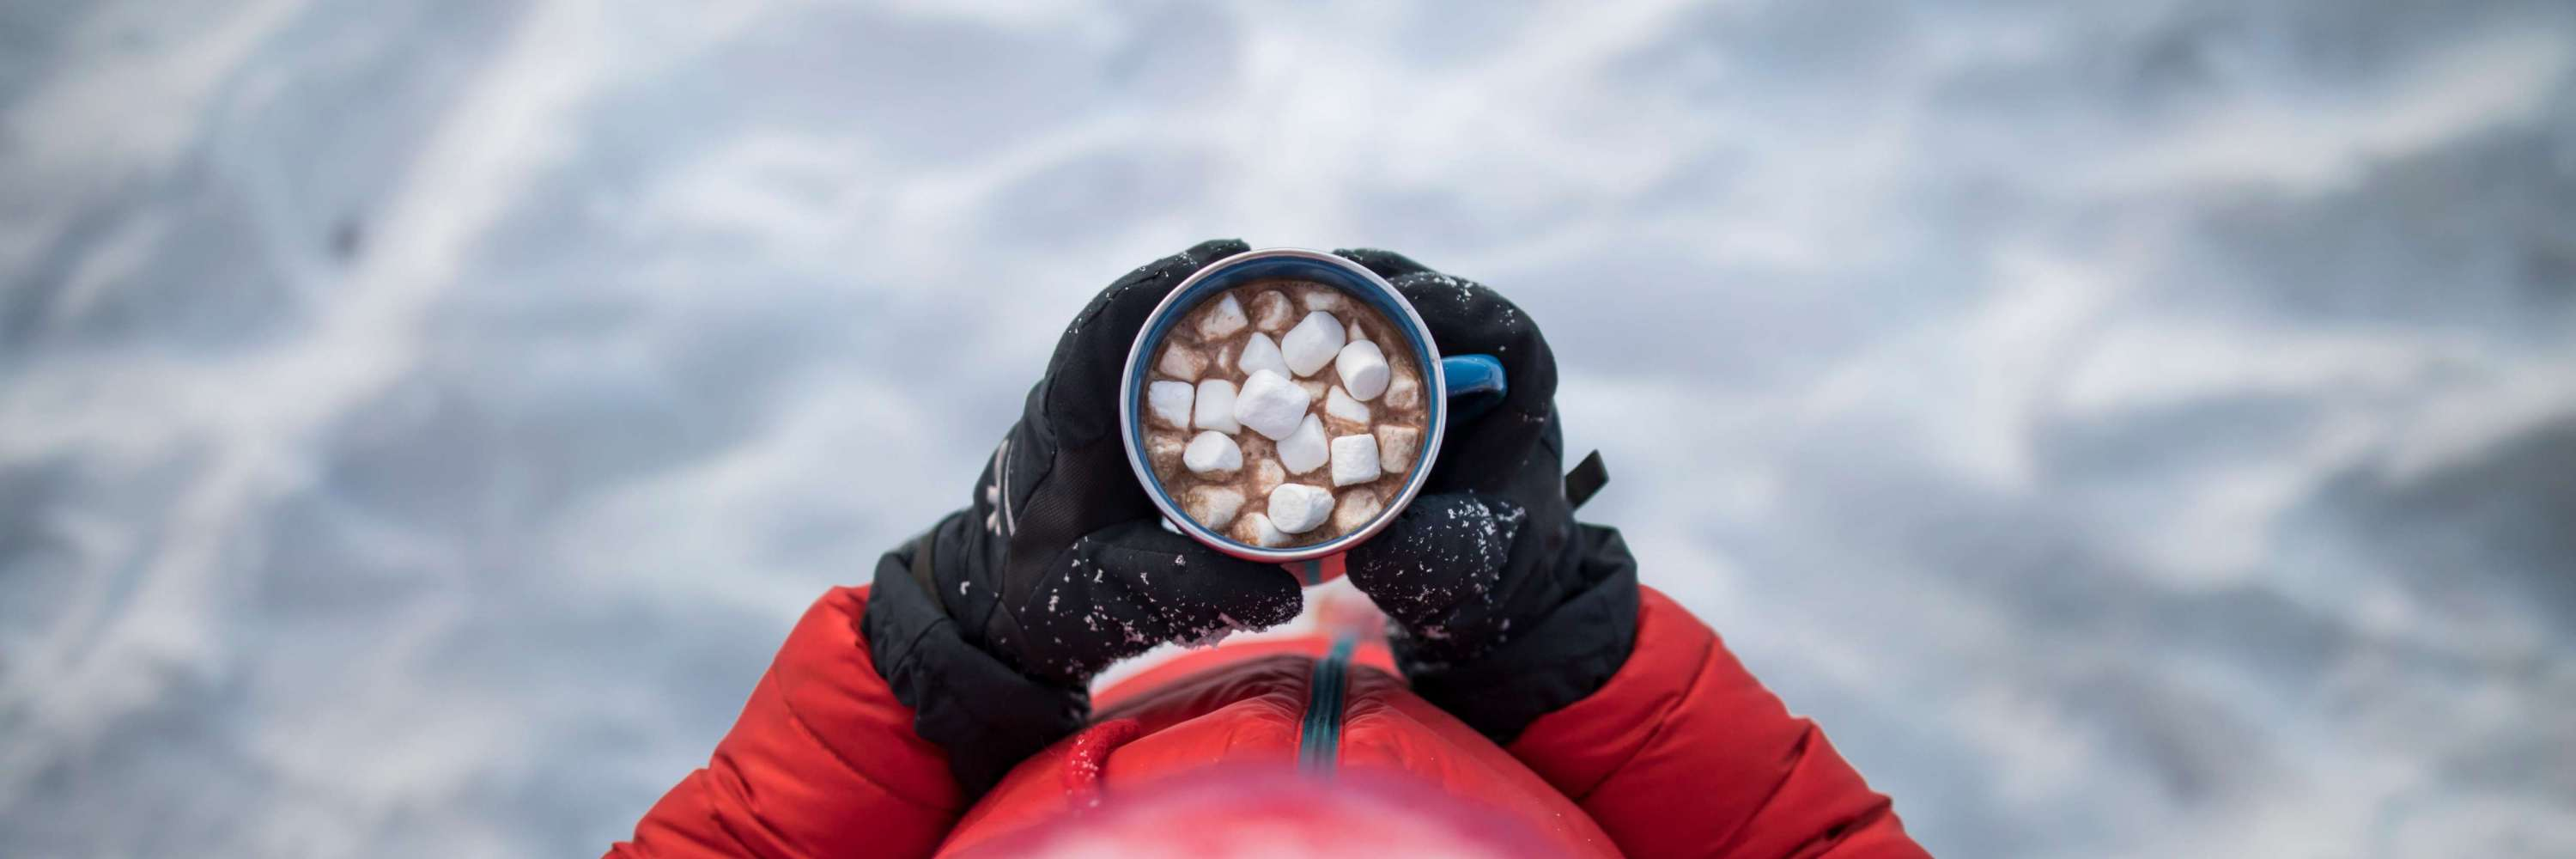 Child holding hot chocolate outside in the snow